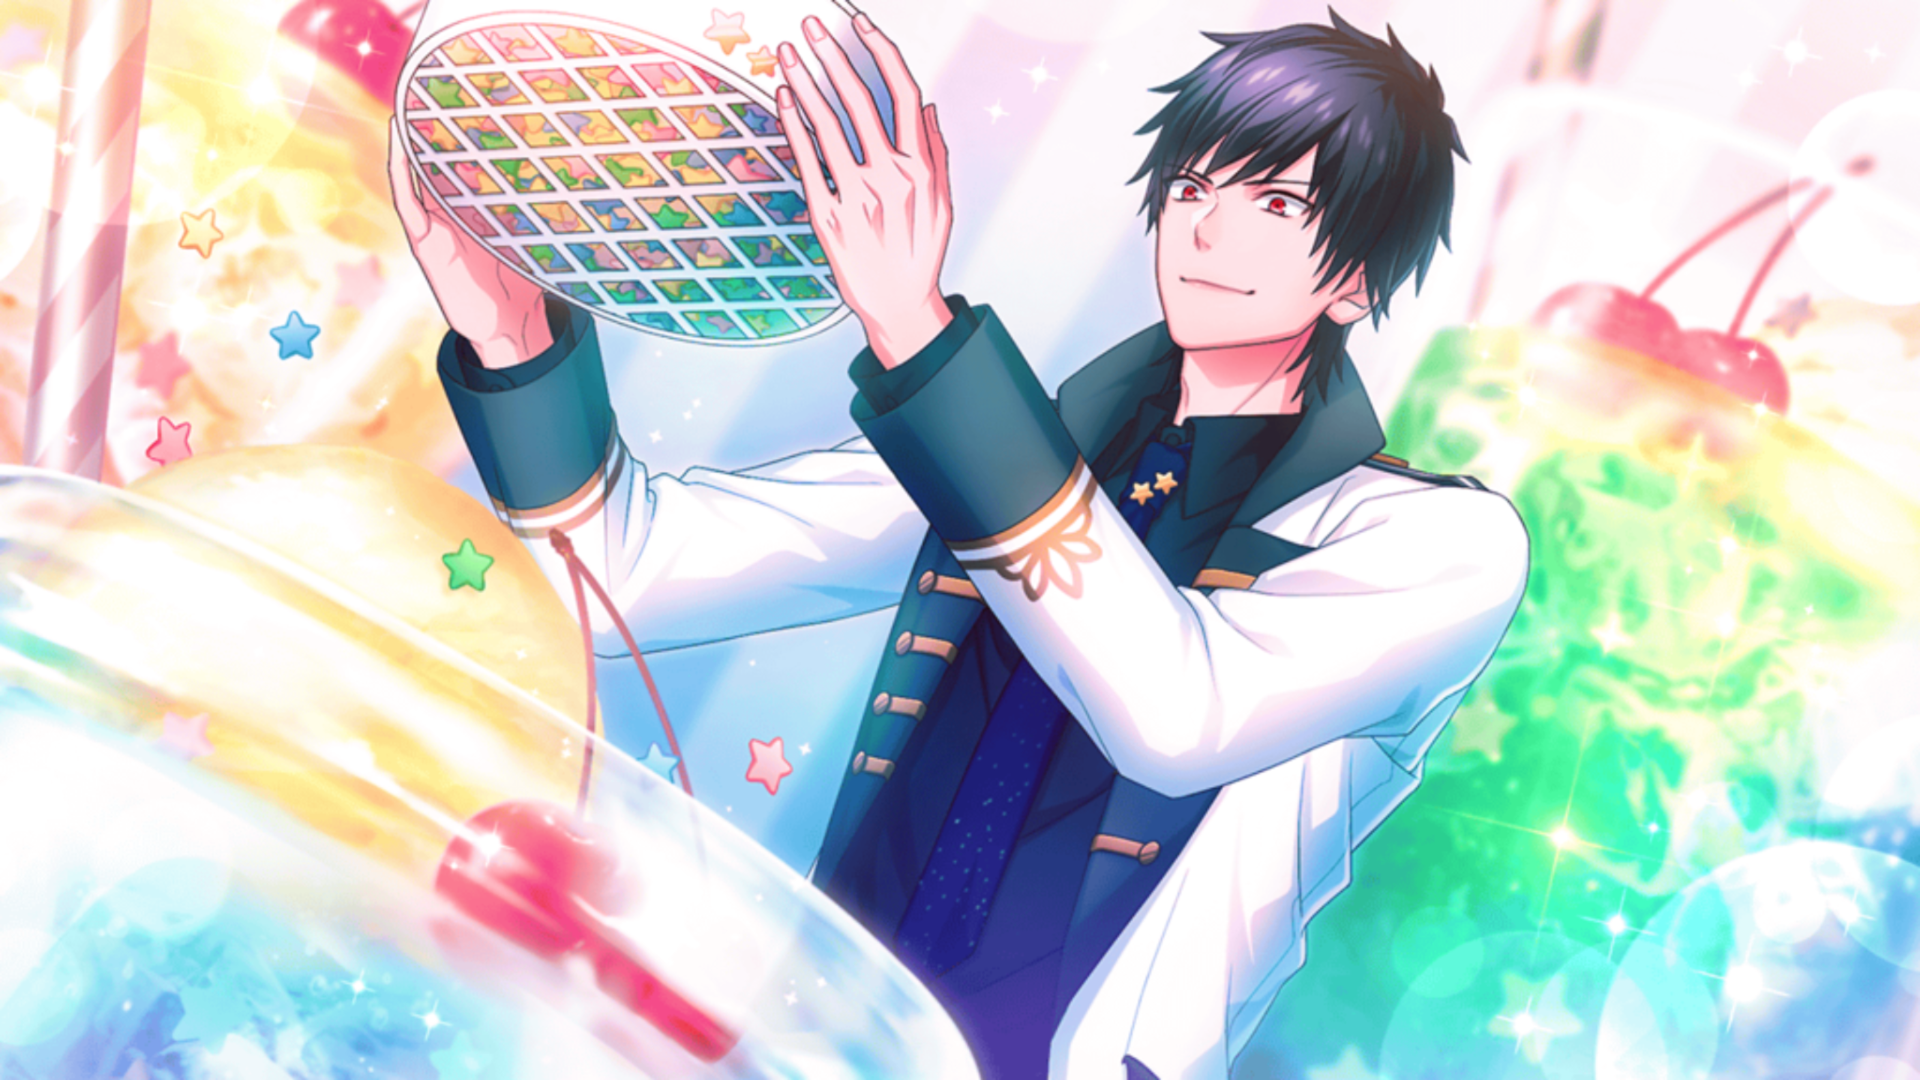 【BIRTHDAY SWEETS】Goshi Kaneshiro Awaken Full.png